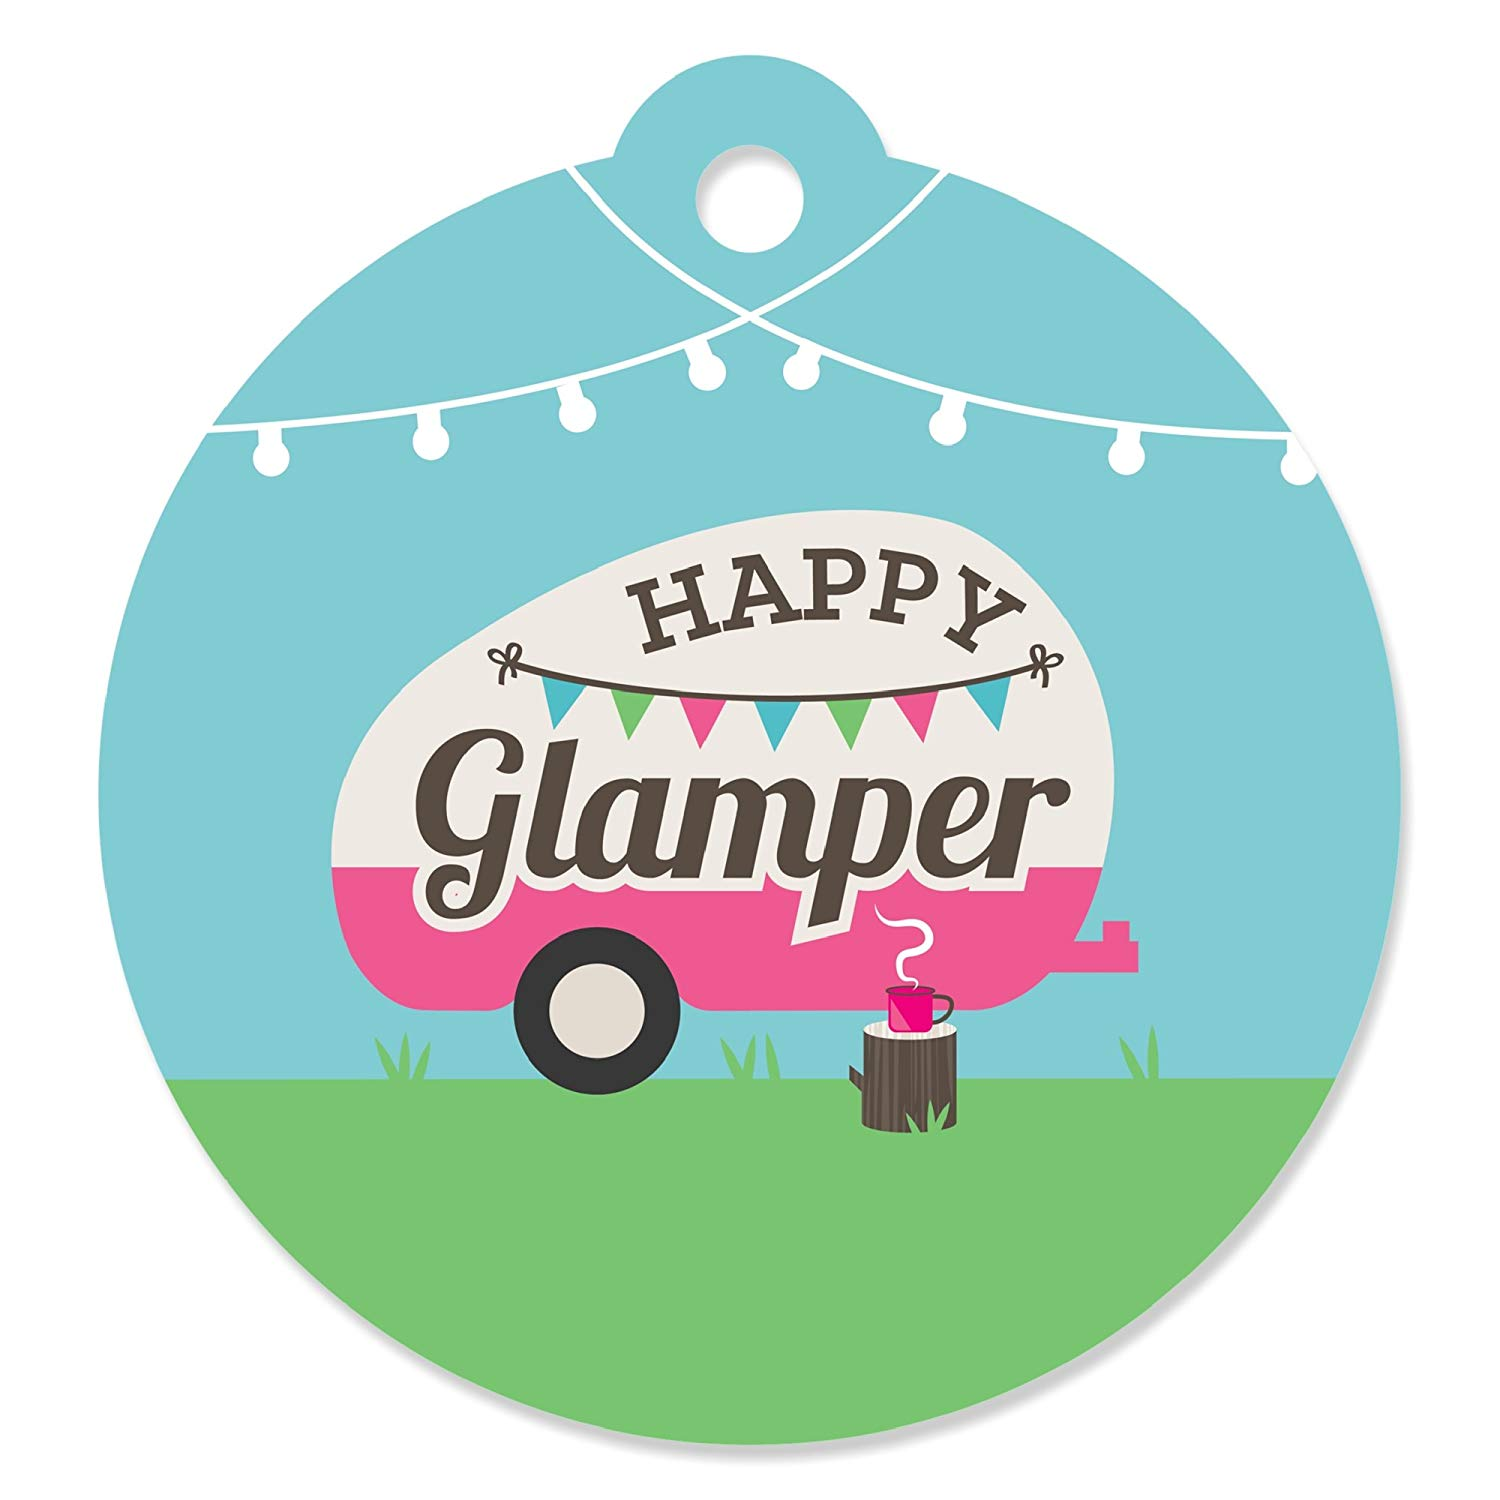 Let's Go Glamping - Camp Glamp Party Or Birthday Party Favor Gift Tags (Set of 20)